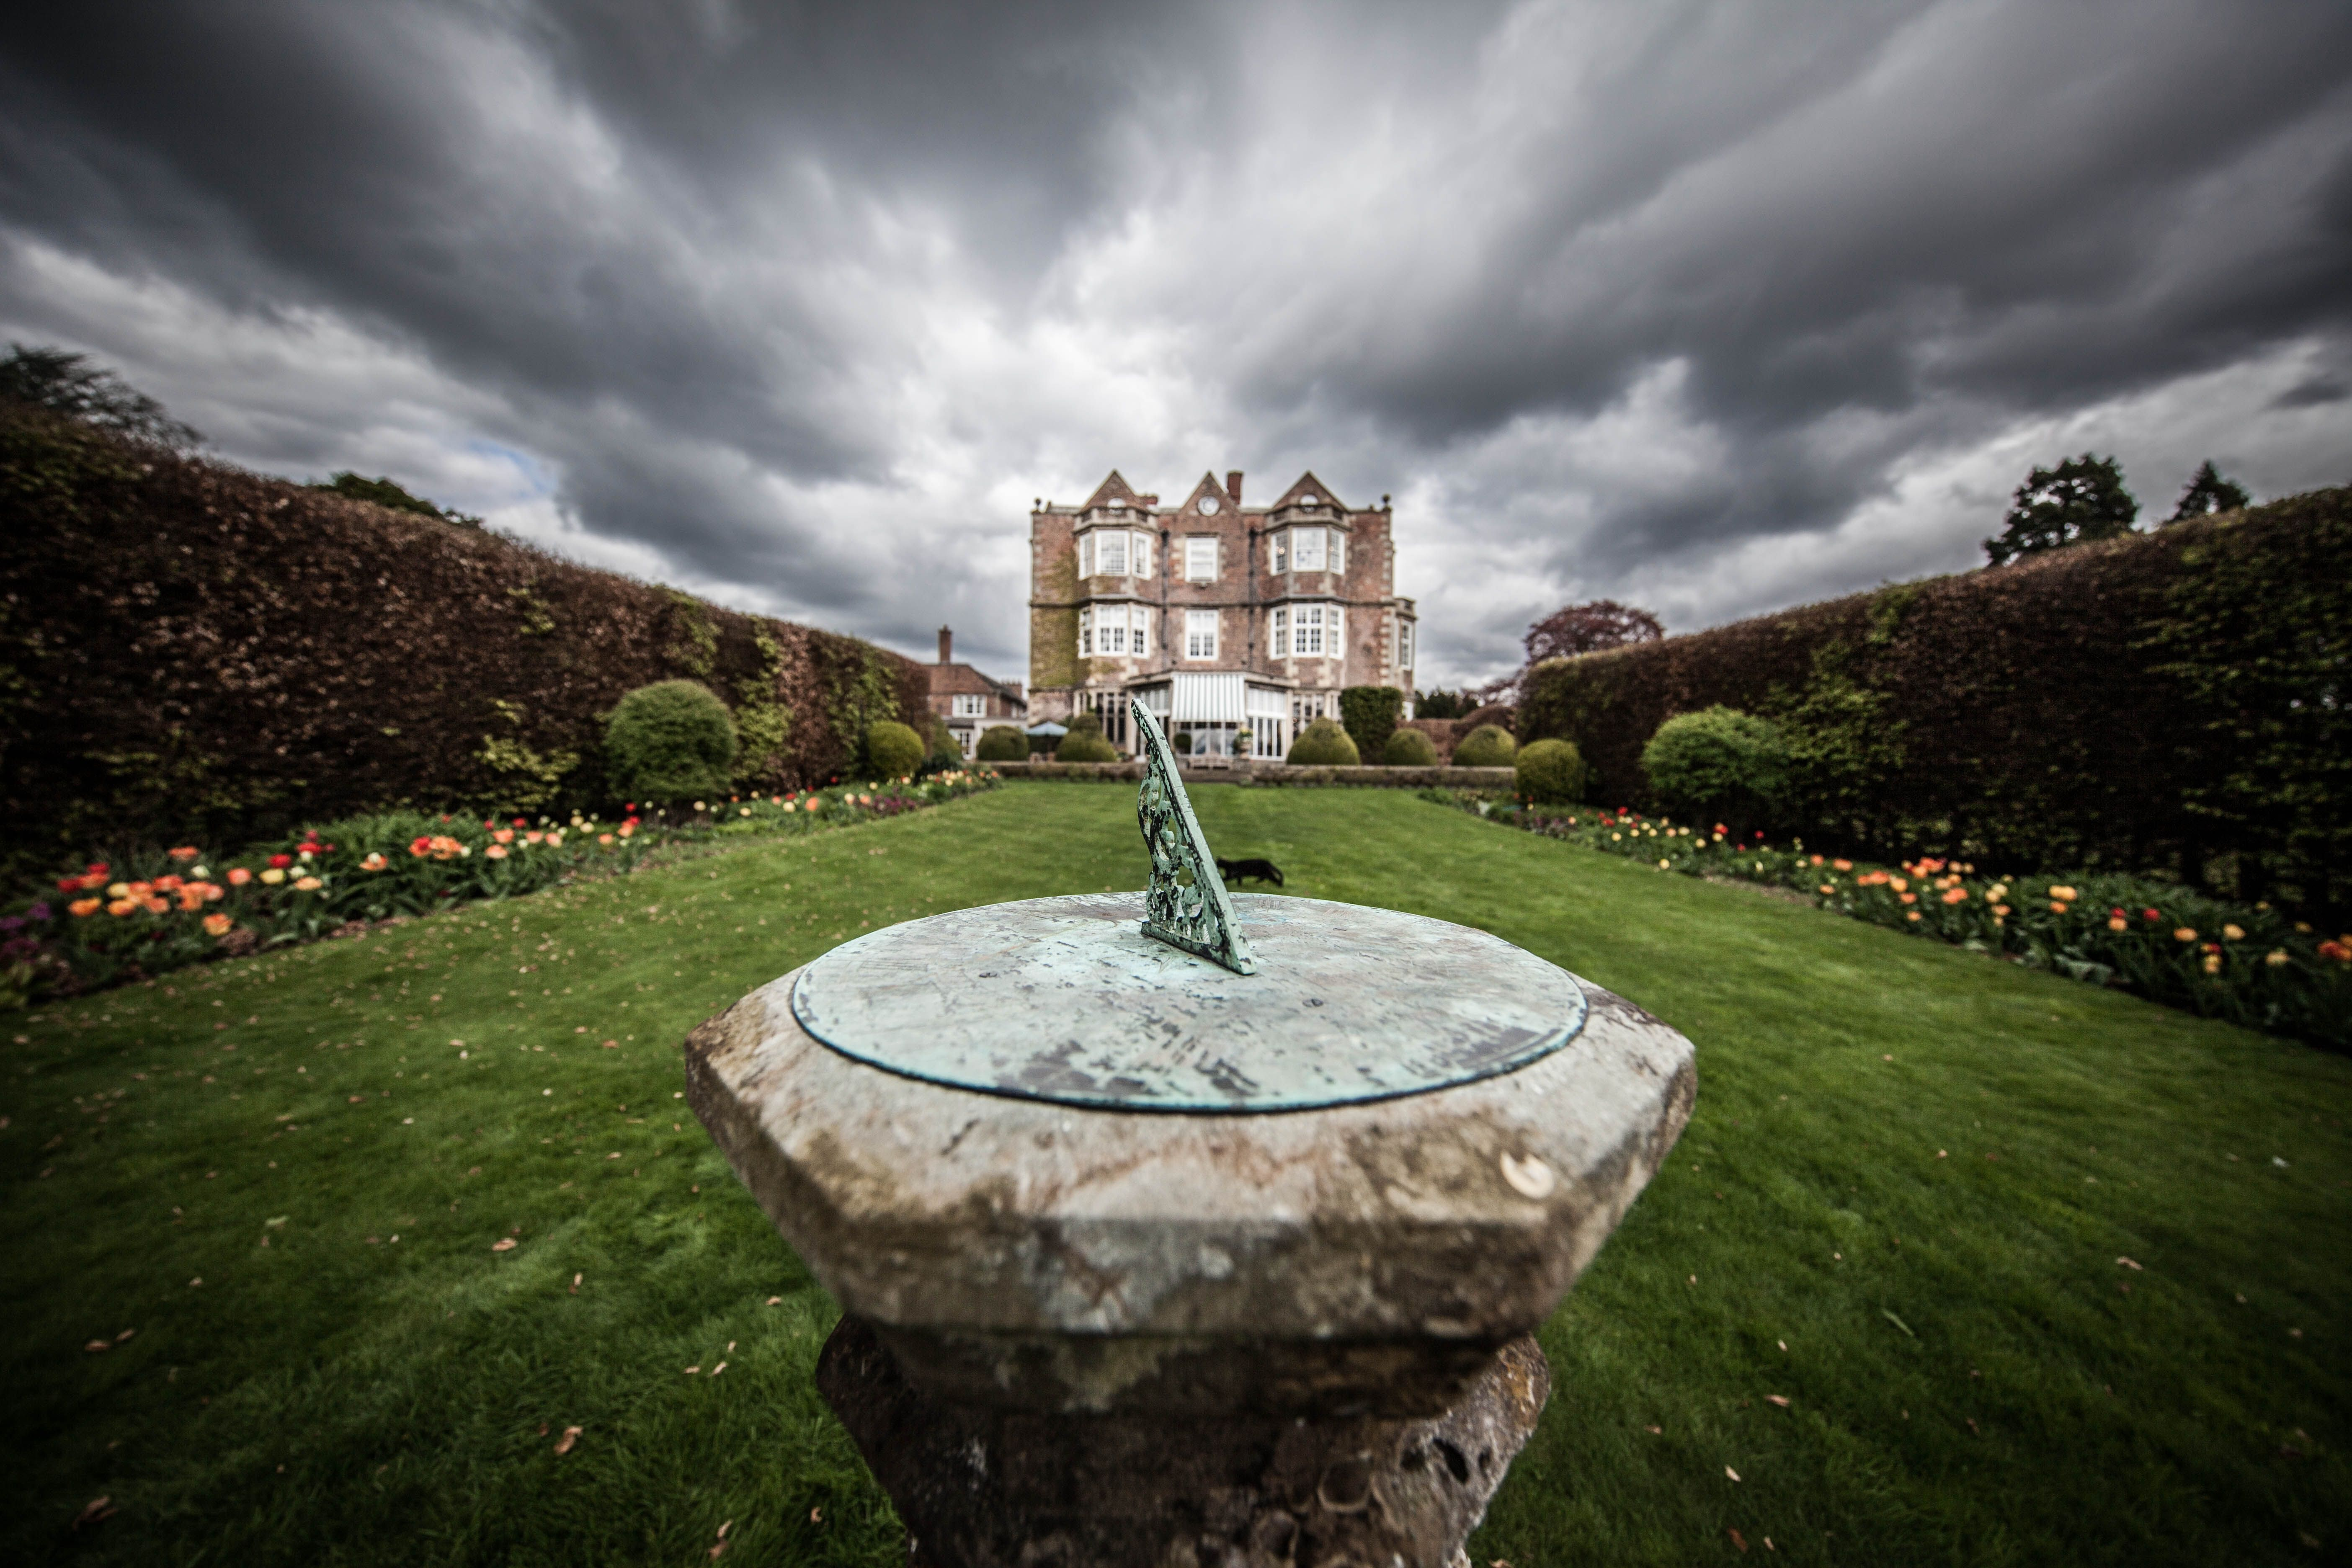 Princess Mary S Sundial In The English Country Gardens Sundial English Country Gardens Country Gardening